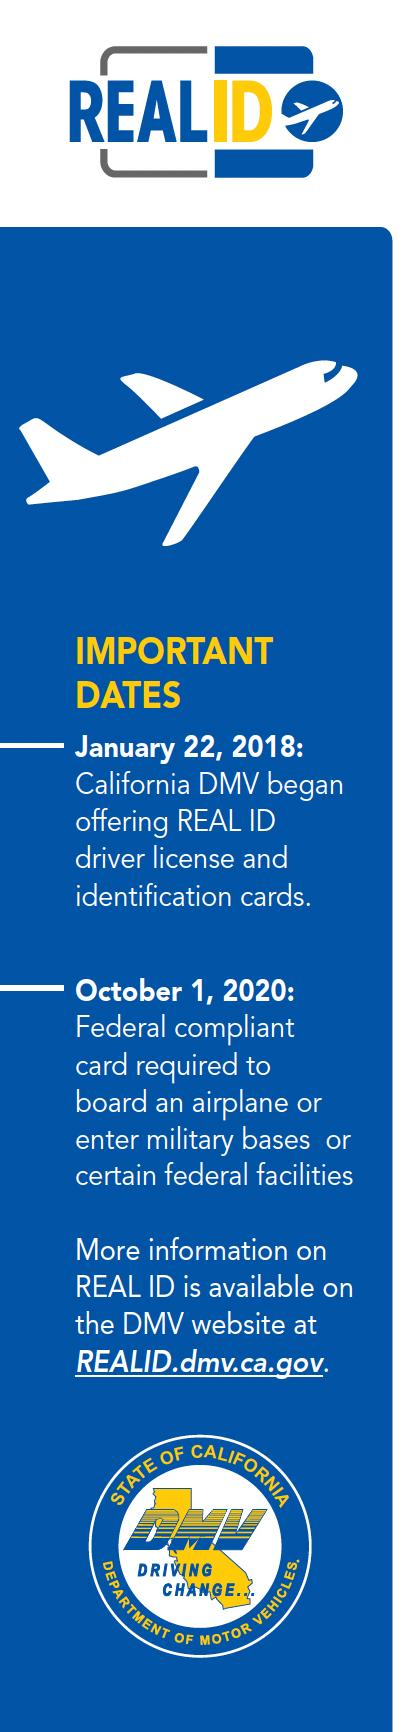 Real ID Important Dates